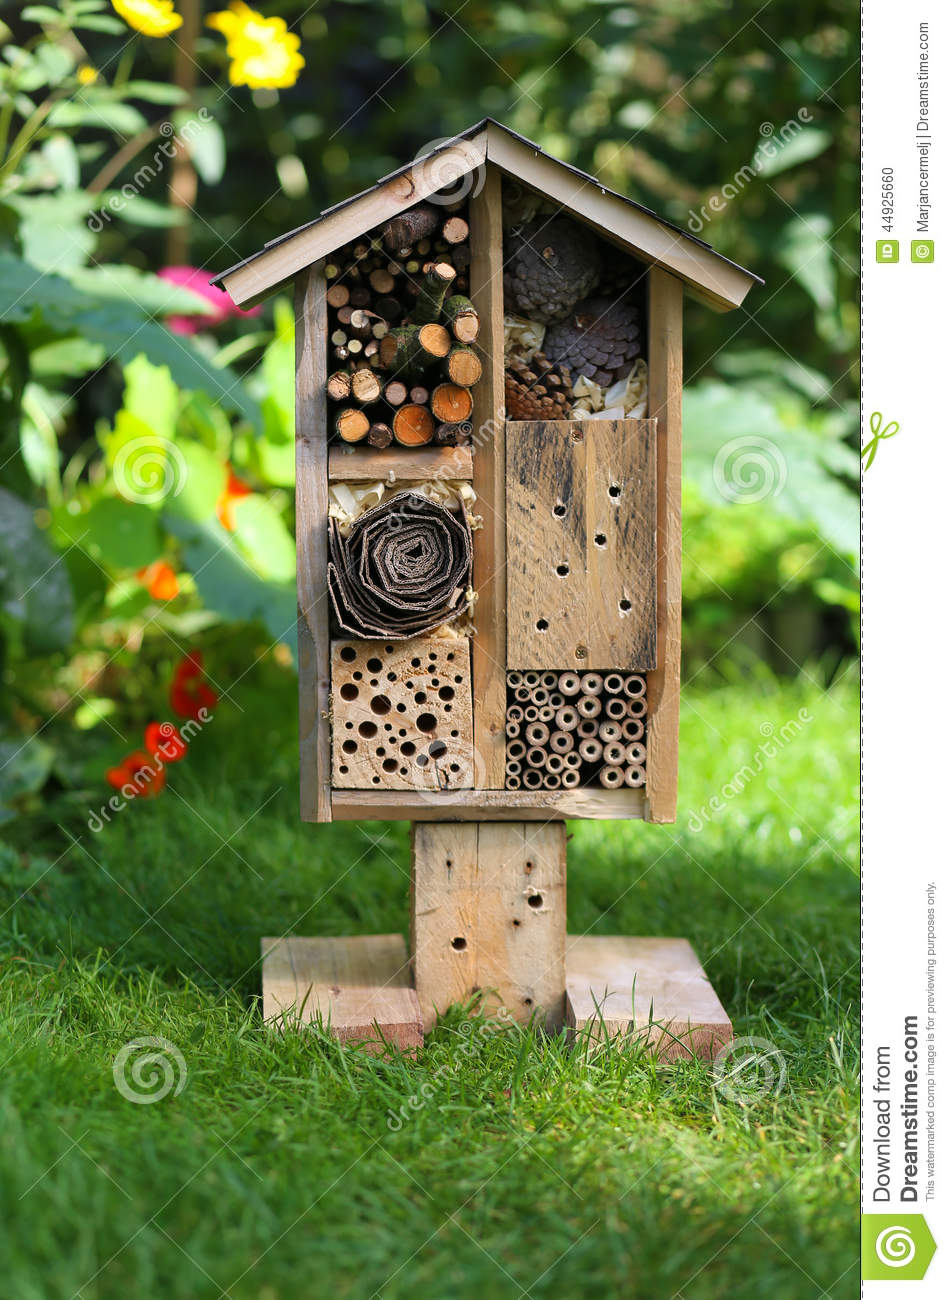 Wooden insect house garden decorative bug hotel and for Decorative home